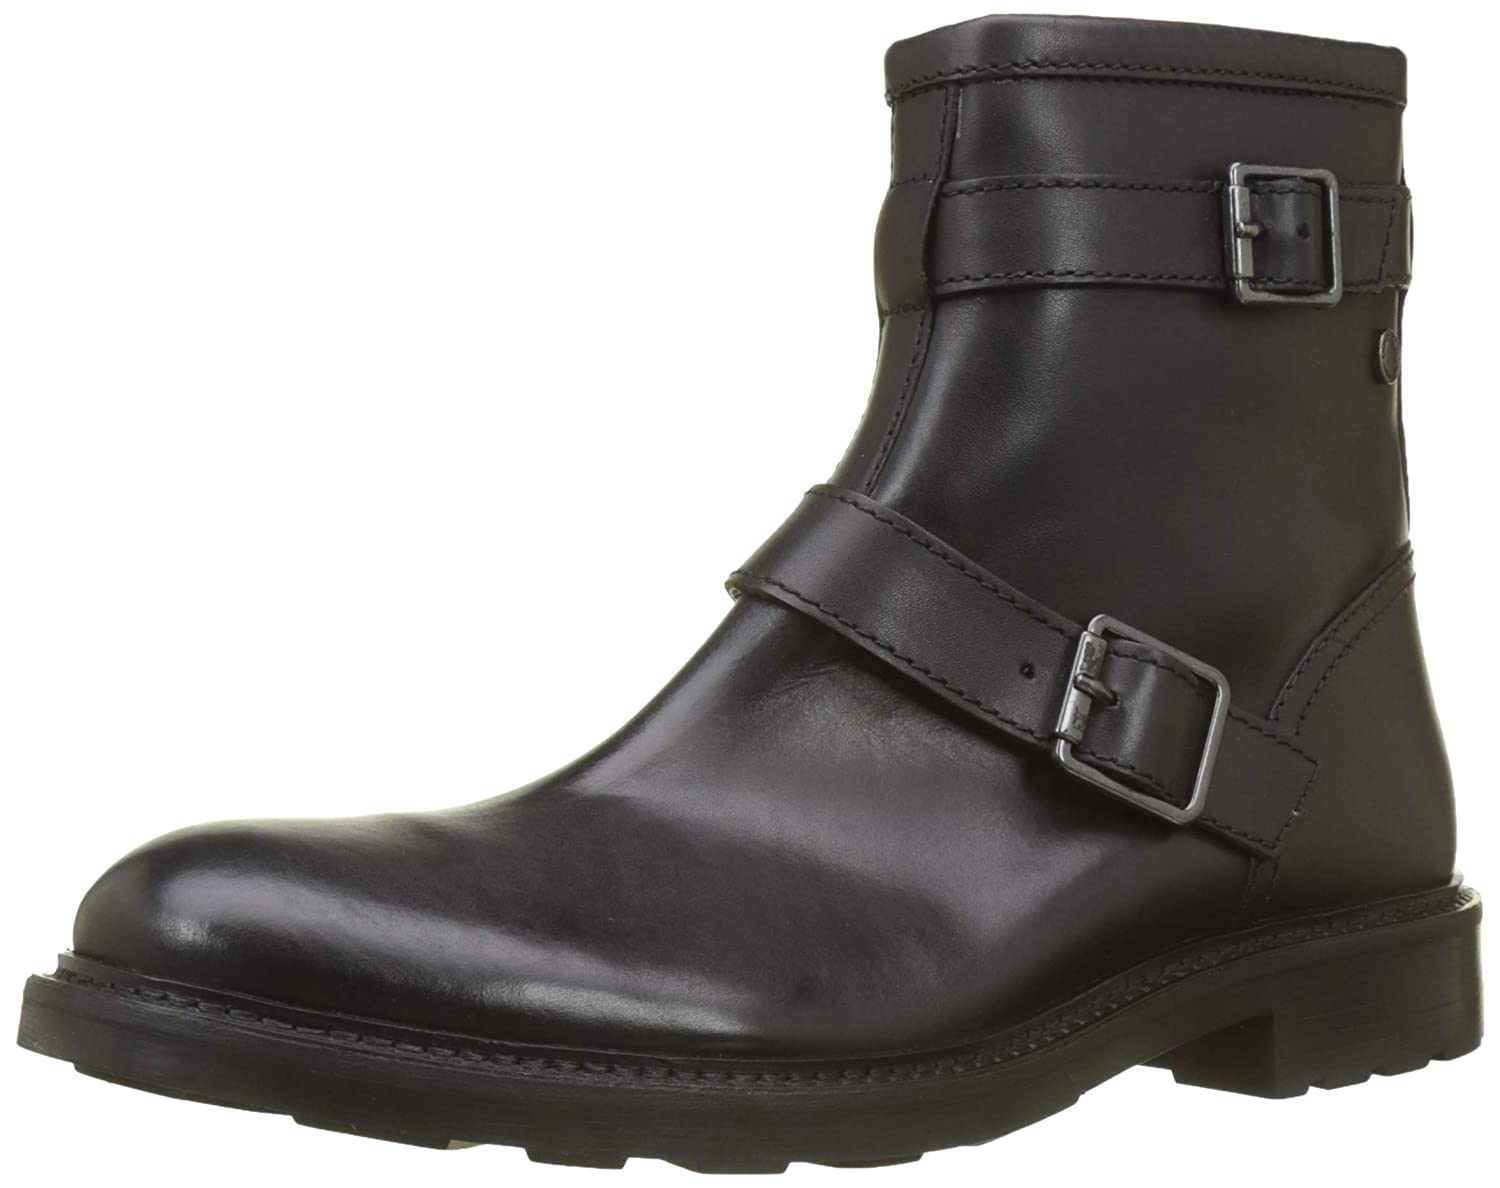 TALLA 44 EU. Base London Ortiz - Botas Estilo Motero Hombre